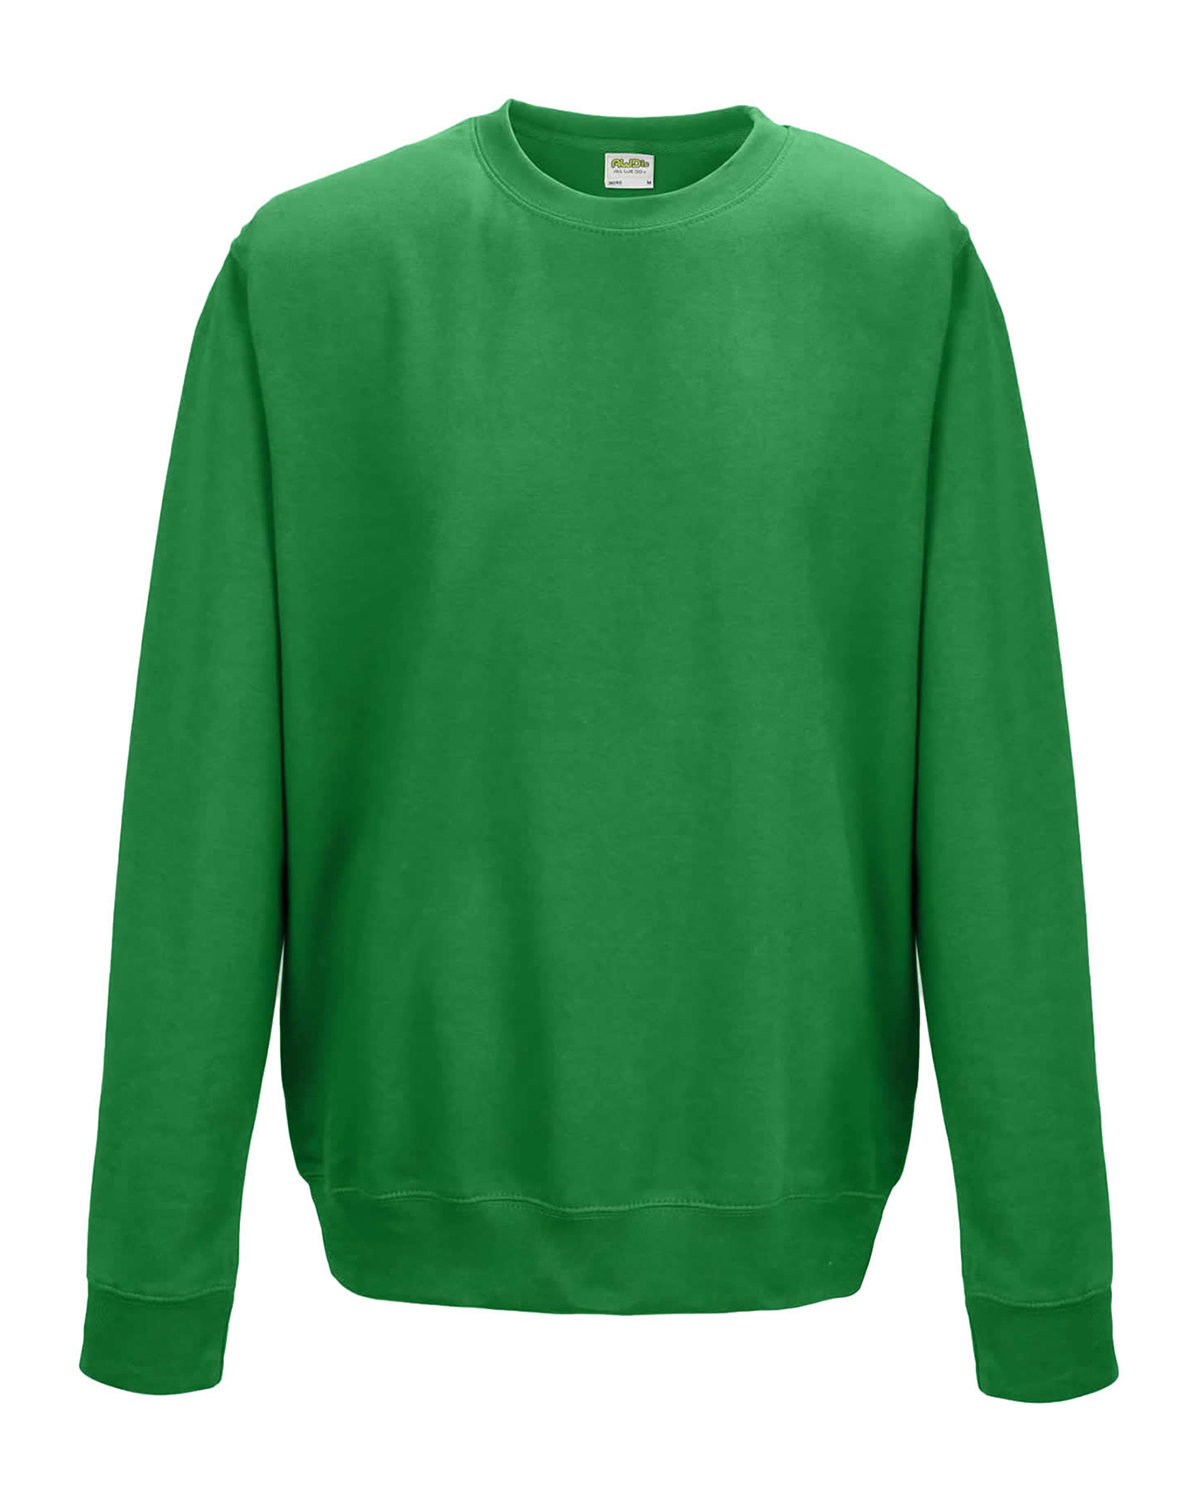 Just Hoods By AWDis Adult 80/20 Midweight College Crewneck Sweatshirt KELLY GREEN